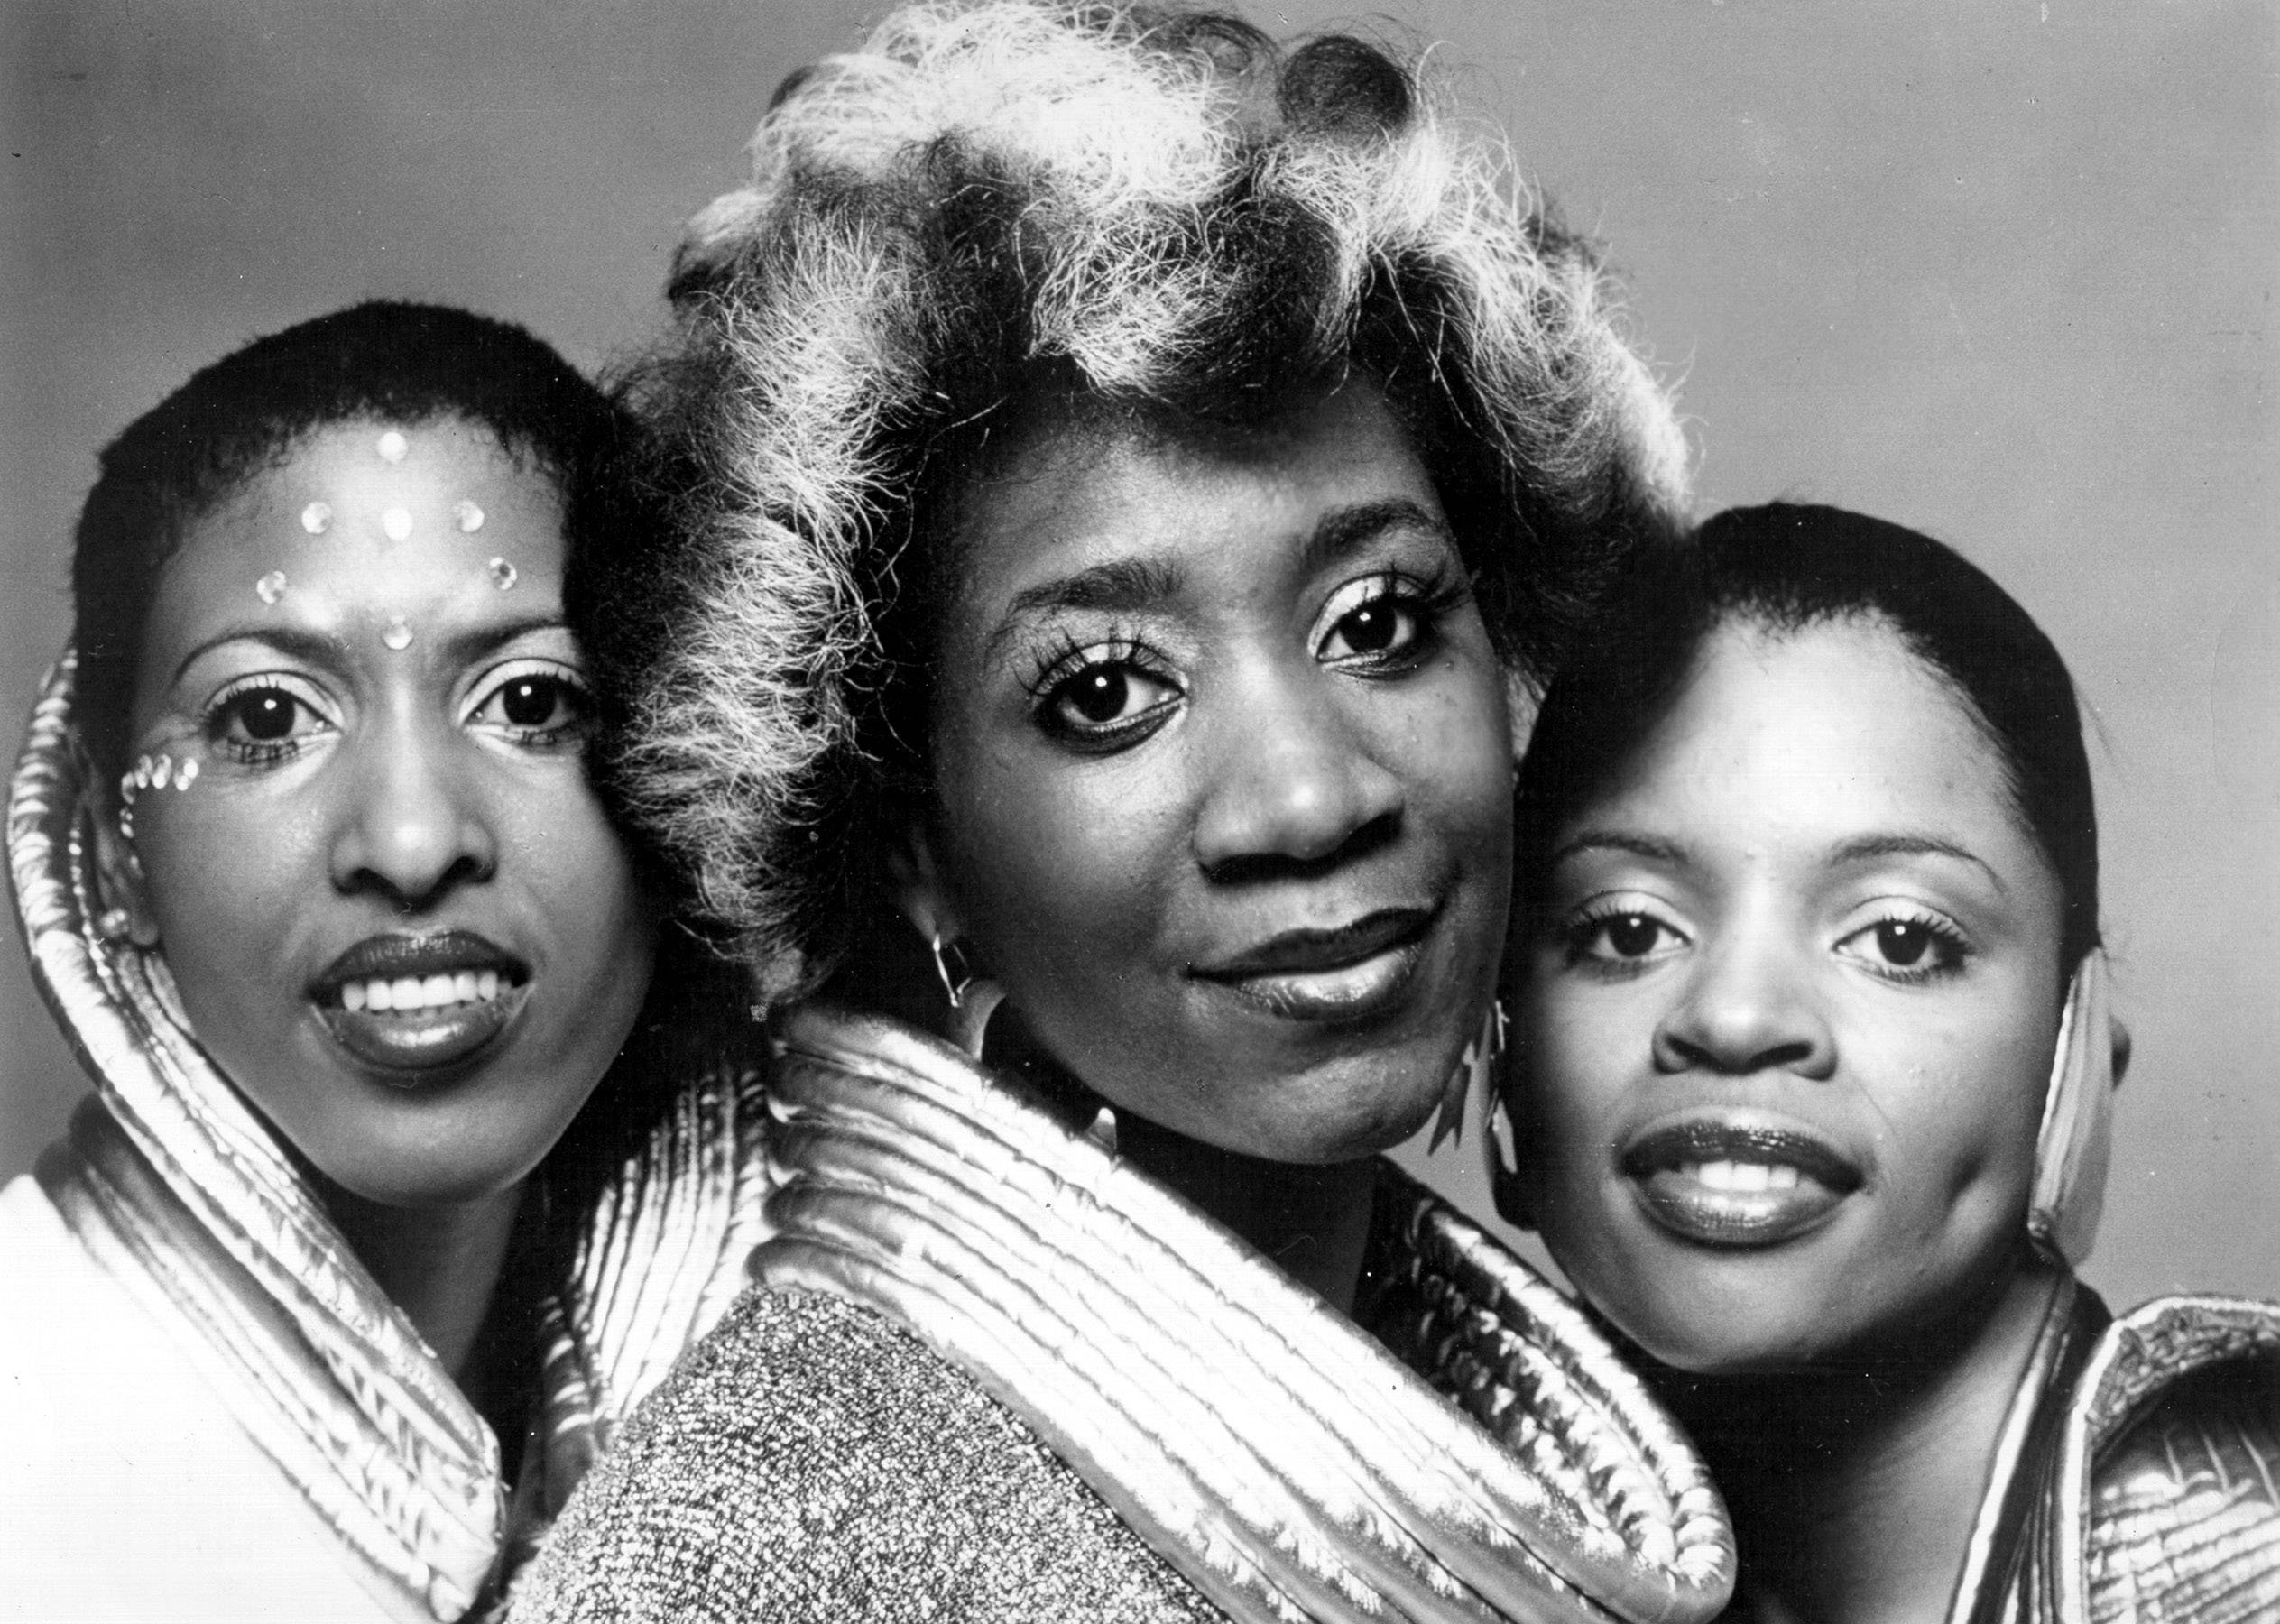 Can we get Destiny's Child to recreate this? Our generation needs it. - (Photo: Michael Ochs Archives/Getty Images